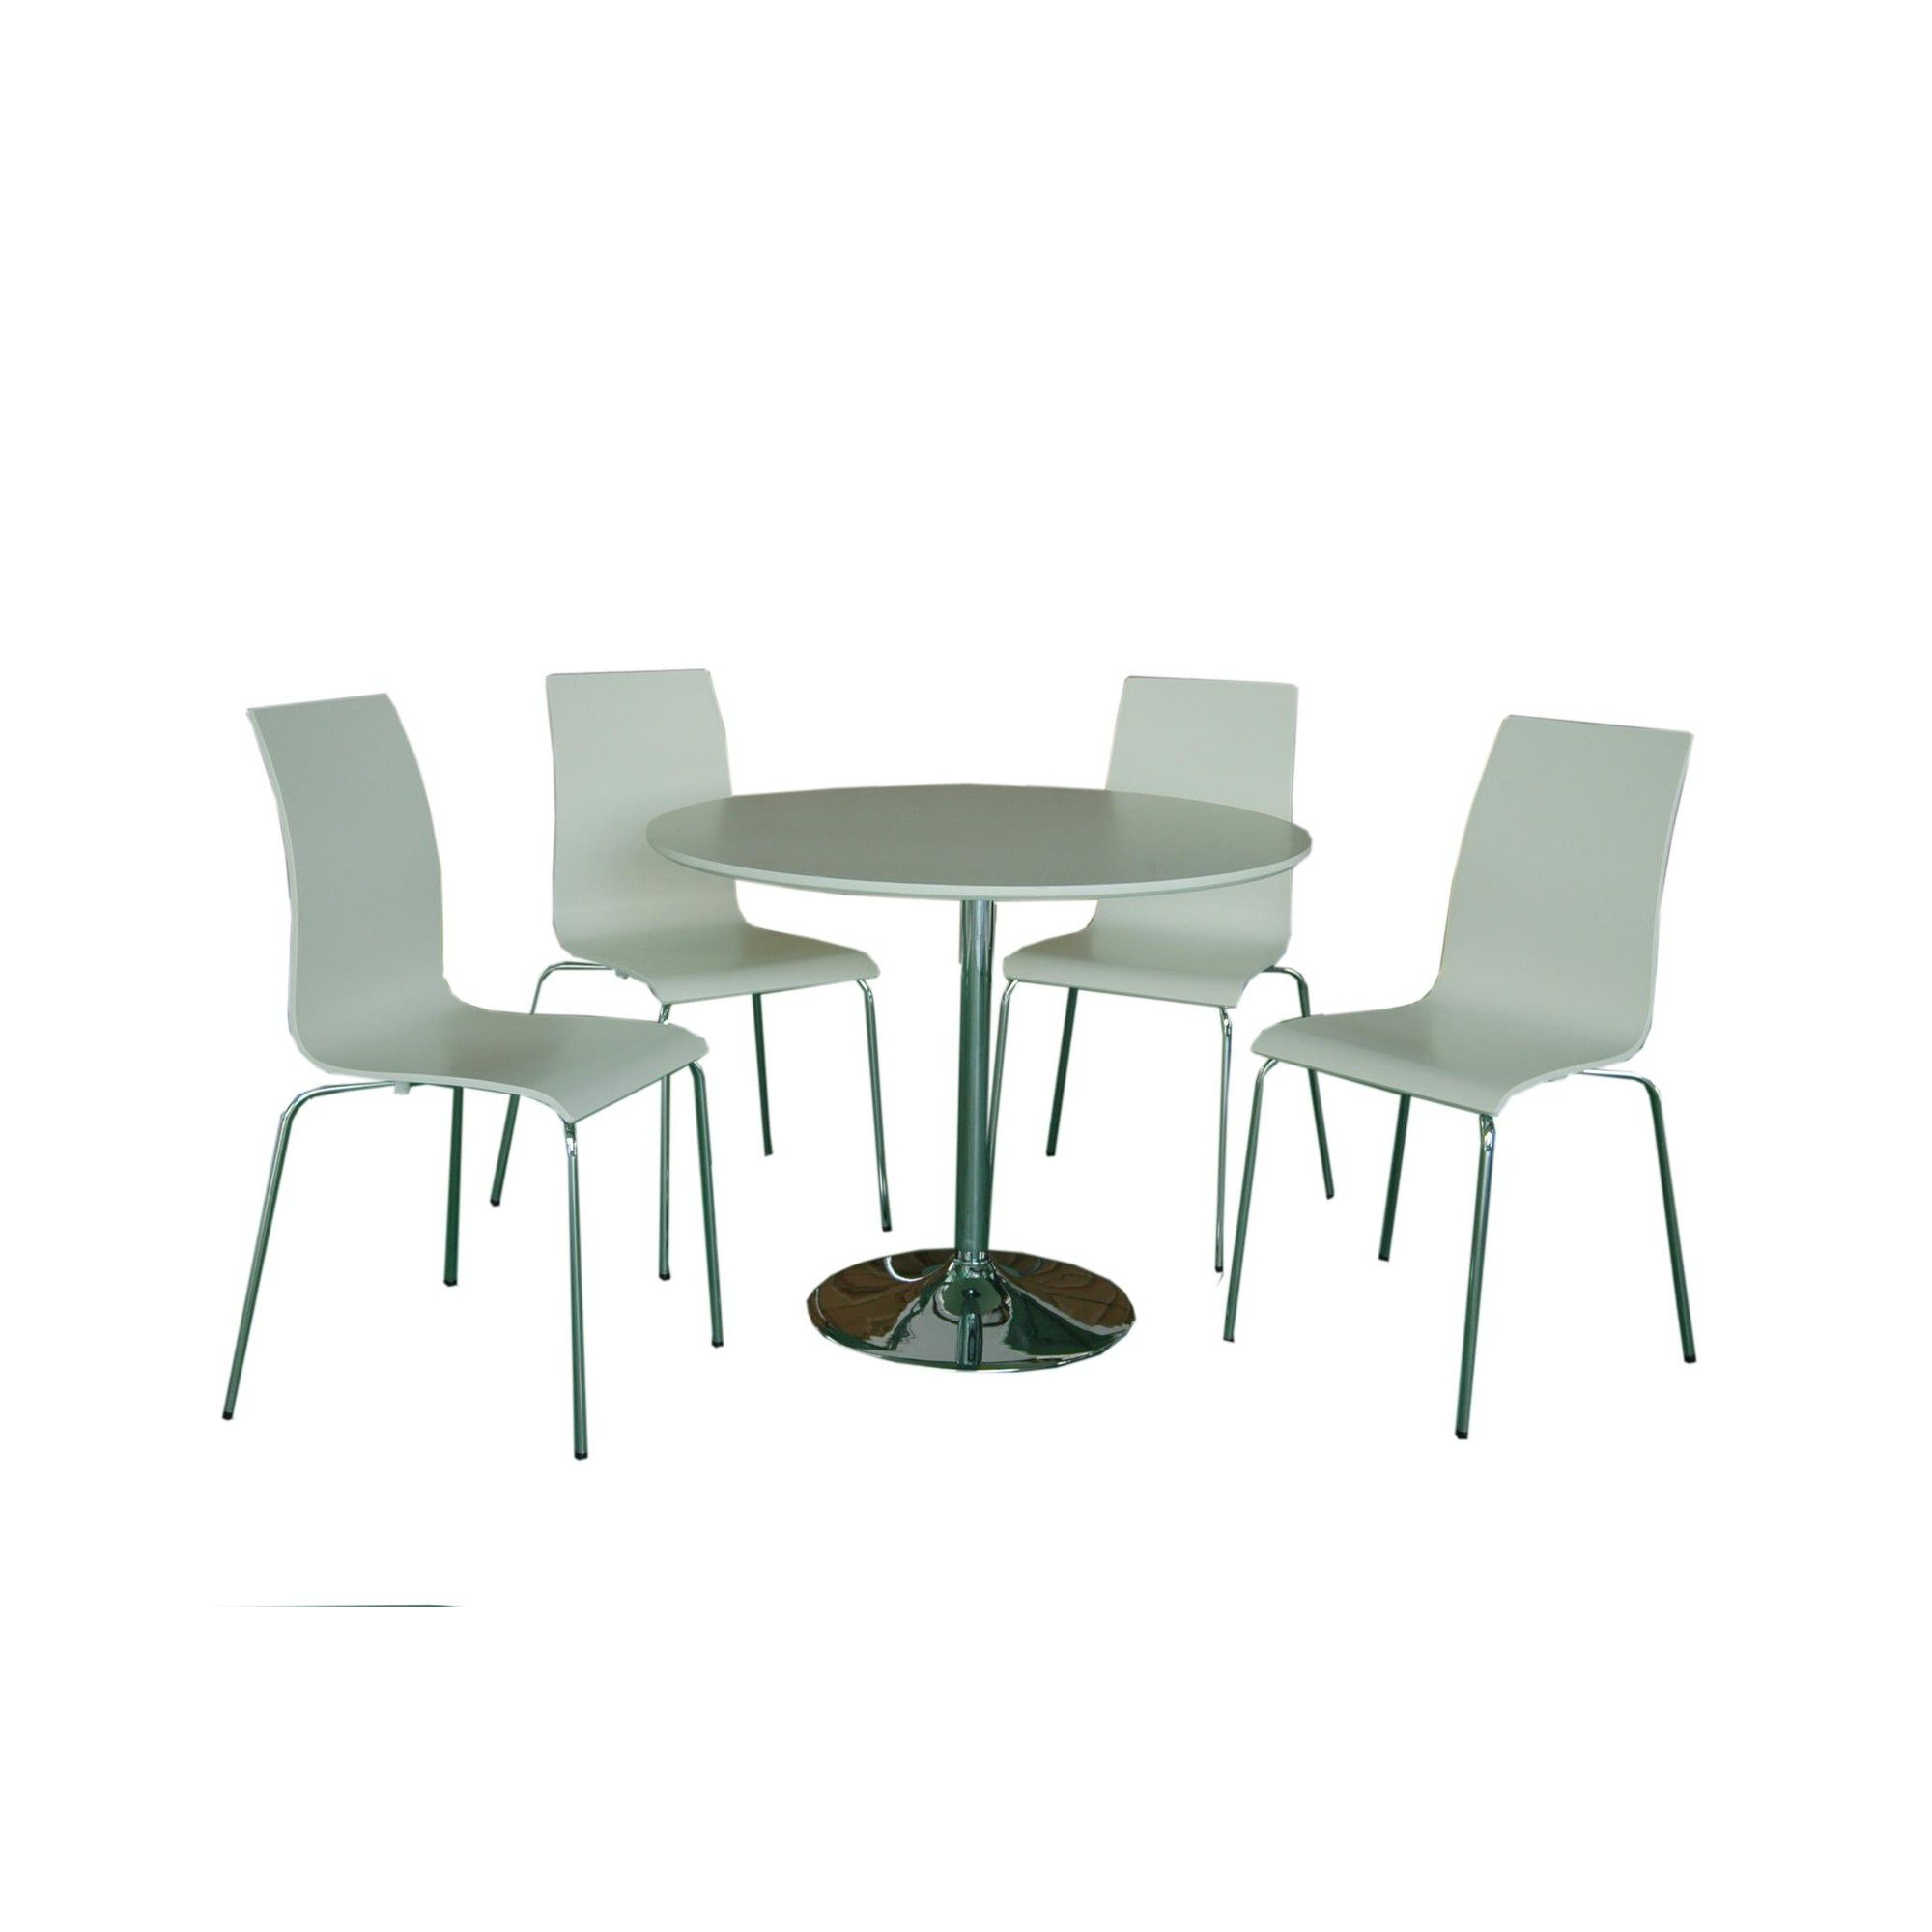 Home Zone Hoxton Five Piece Dining Set - White at Tesco Direct